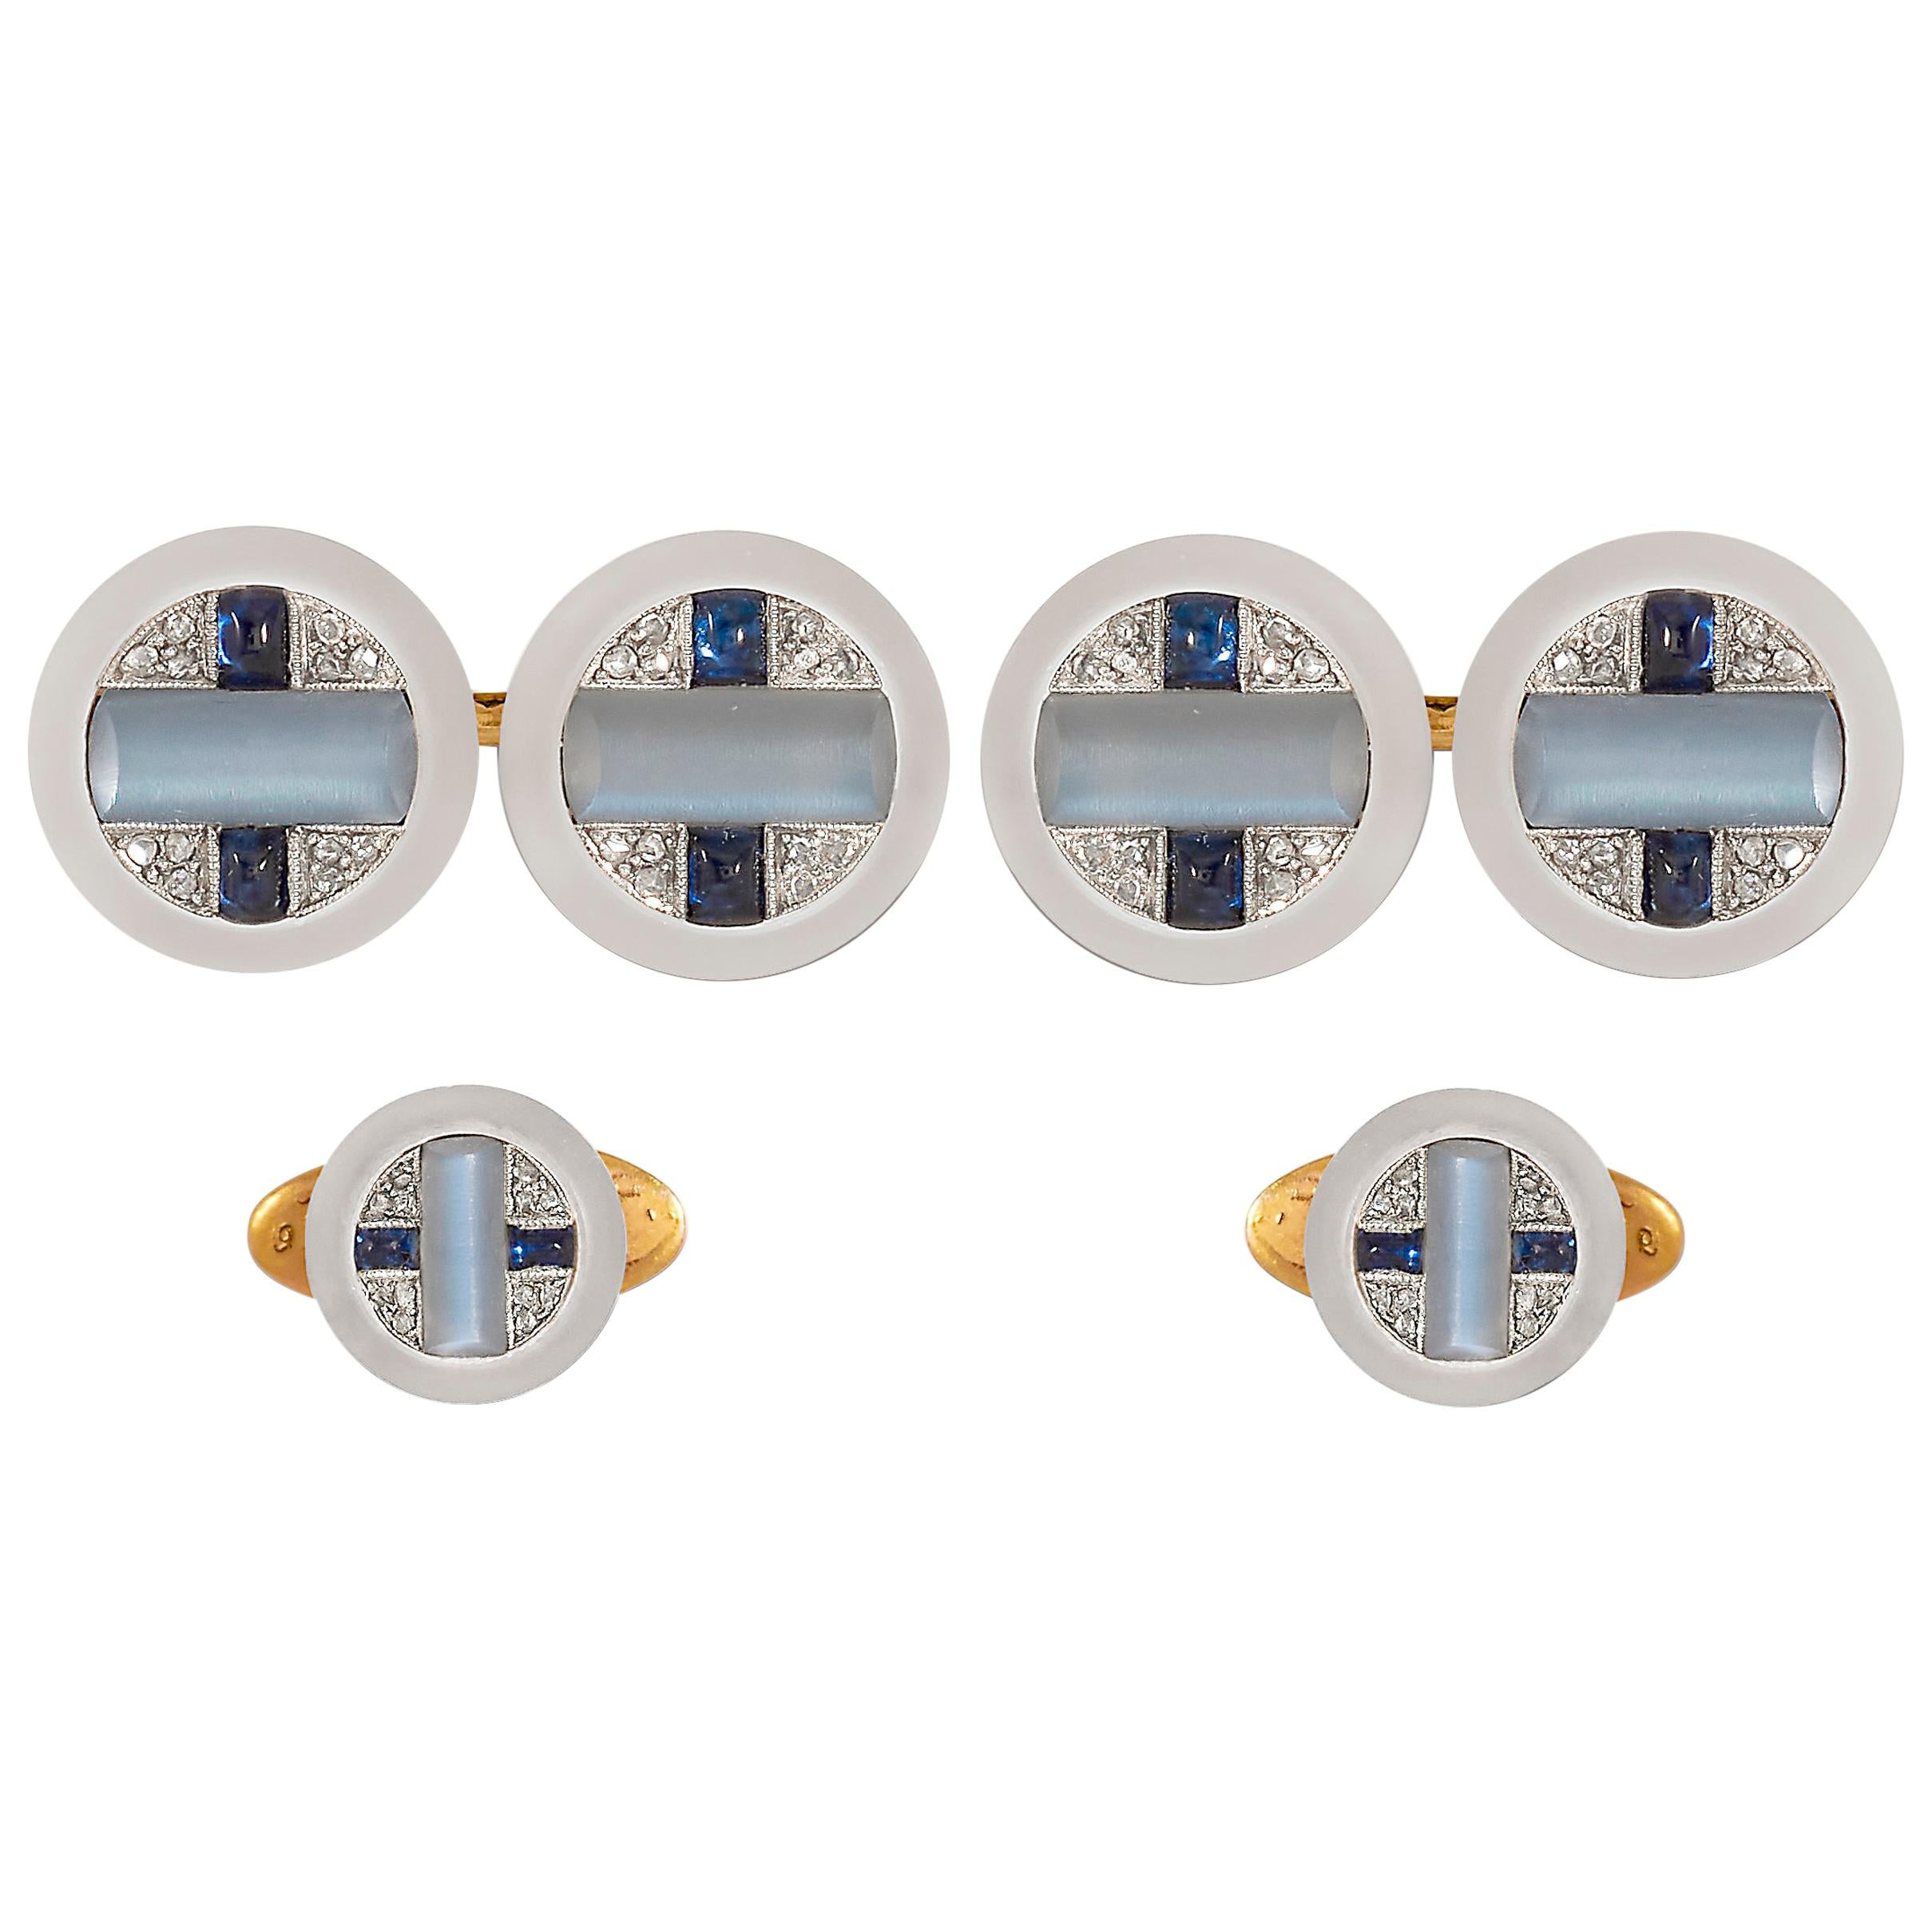 Cartier Art Deco Moonstone, Sapphire and Diamond Cufflinks and Studs